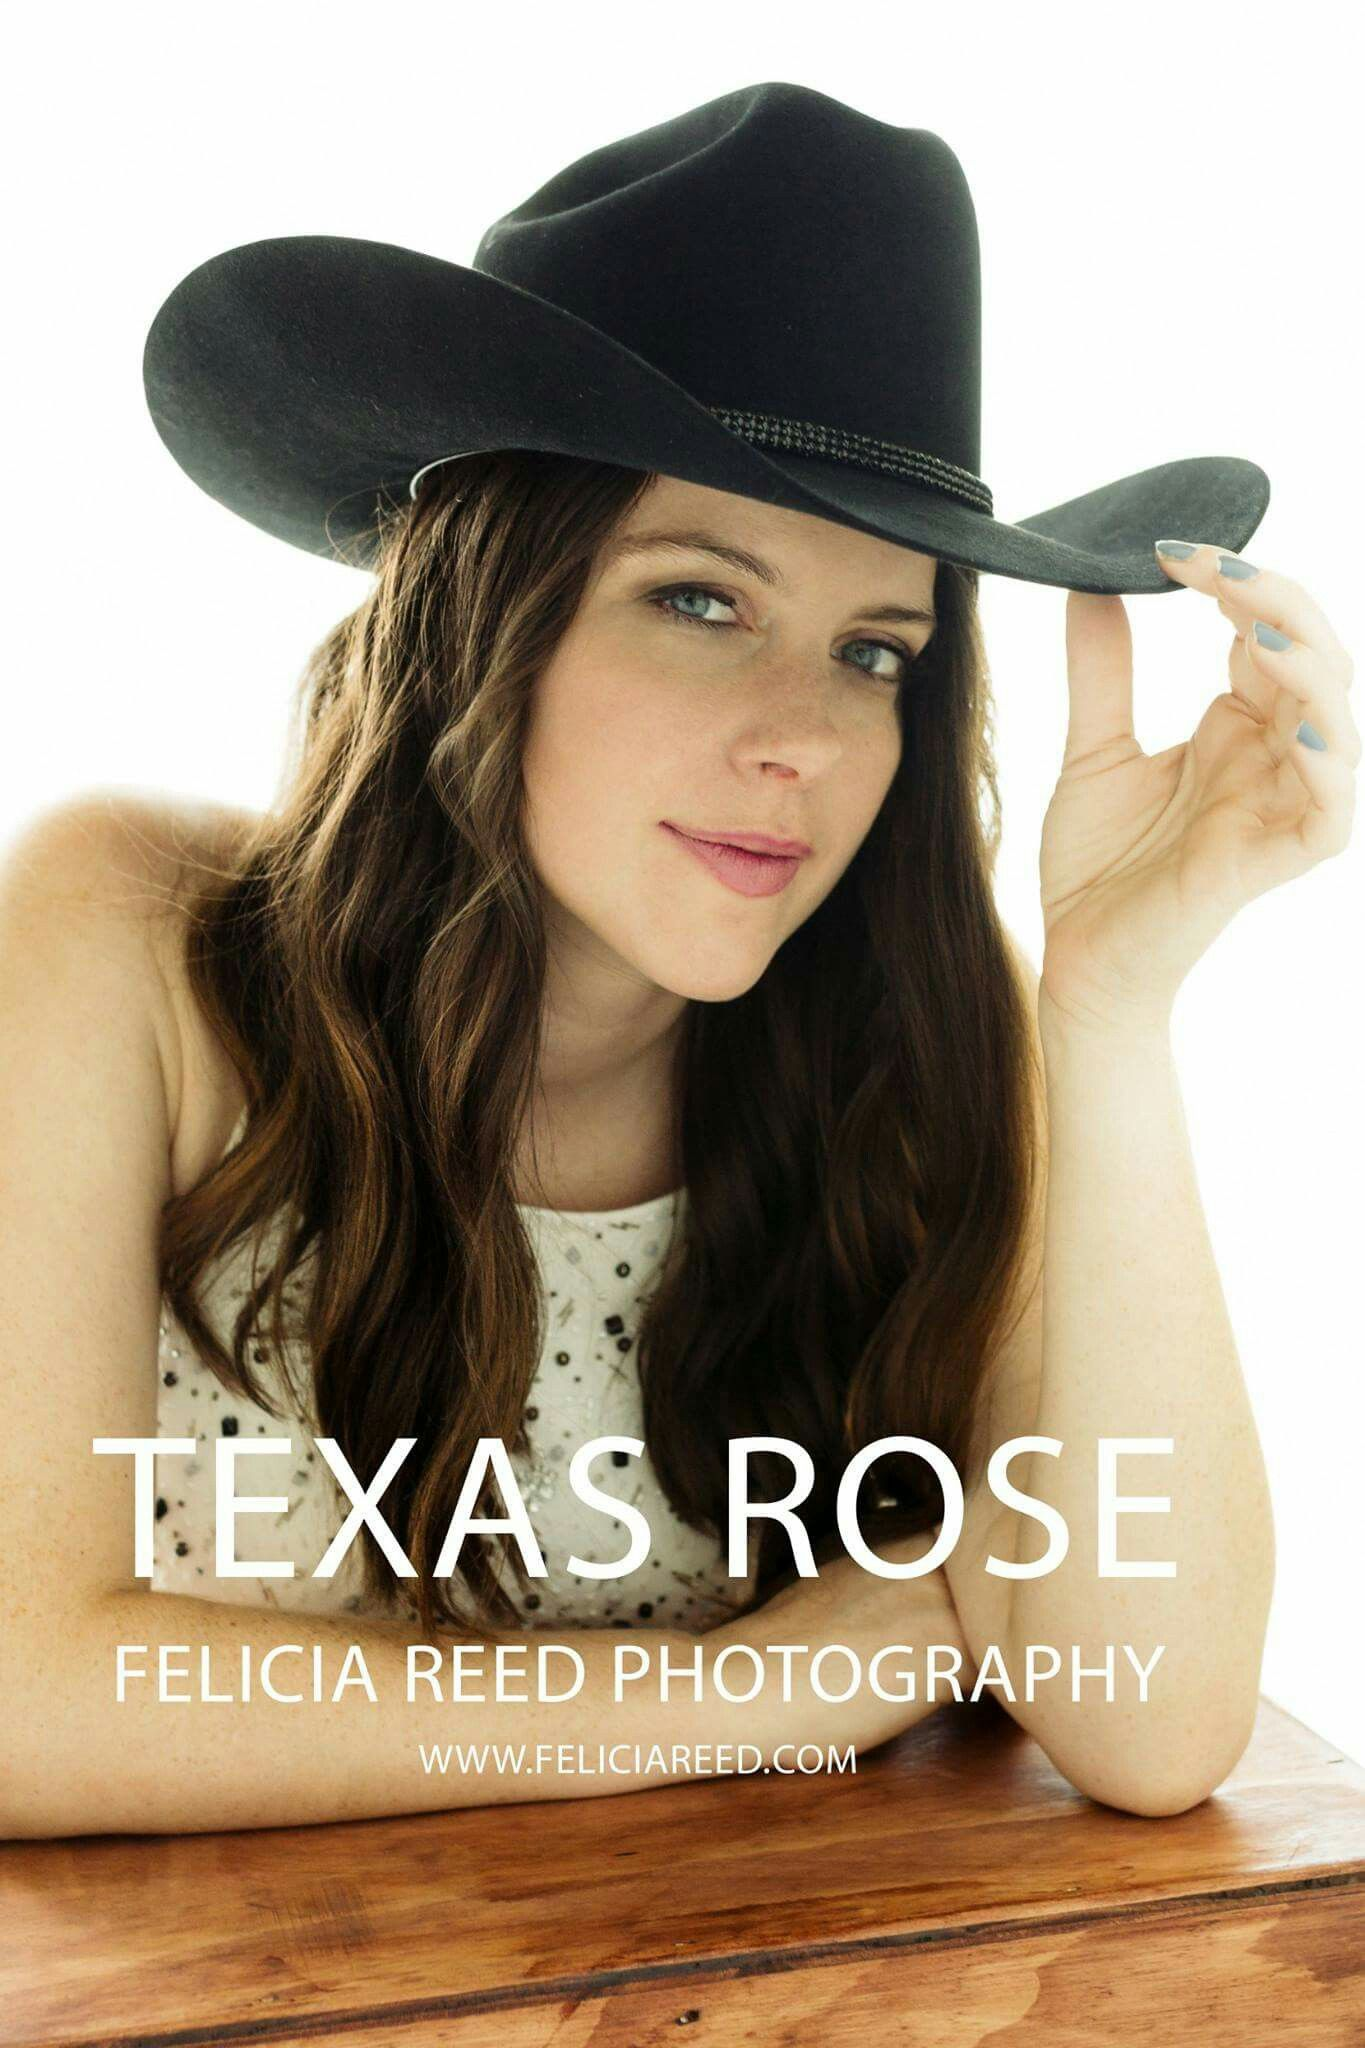 Texas Rose Irish Decent Ireland Rose Of Tralee Women S Portraiture Felicia Reed Photography Austin Tx Portra Photography Portrait Photographers Felicia